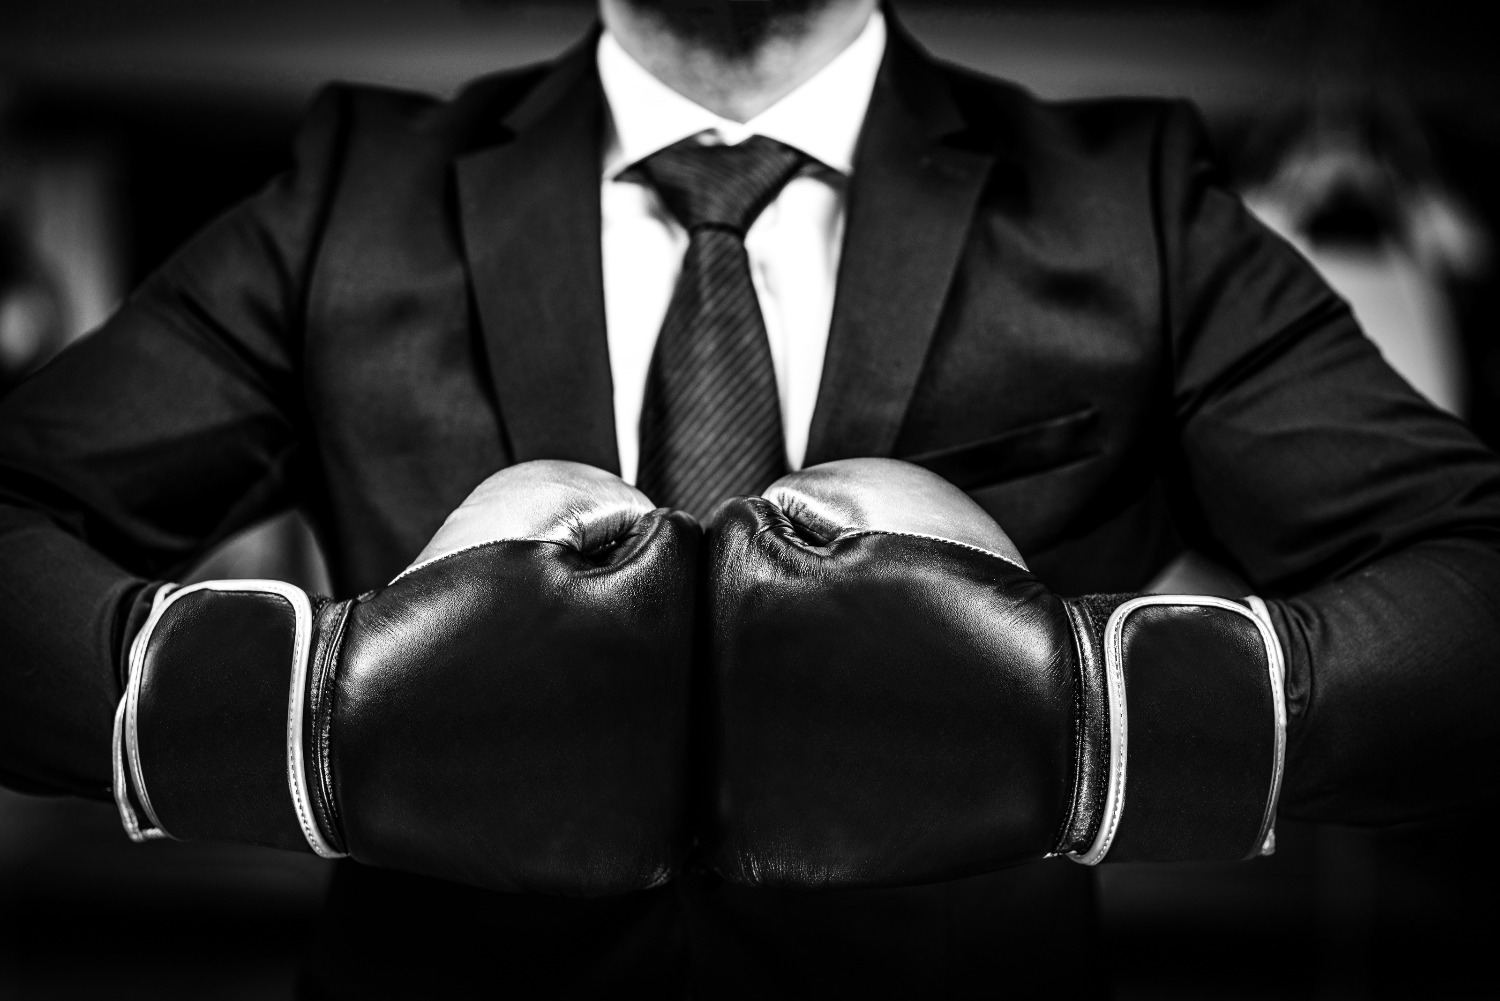 Businessman with boxing gloves is ready for corporate battle. Man in suit, shirt and a tie is holdin